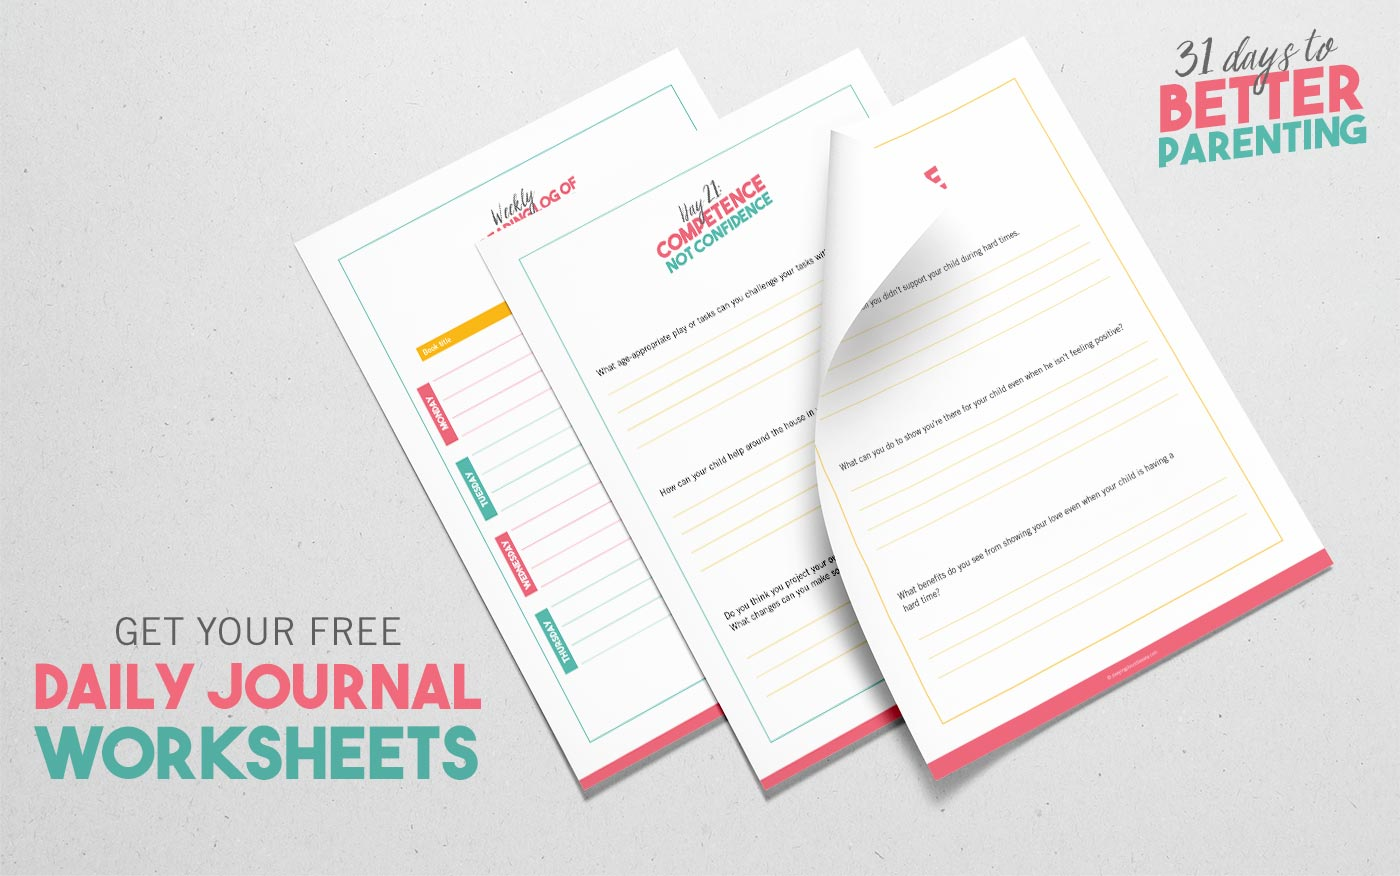 31 days journal worksheets